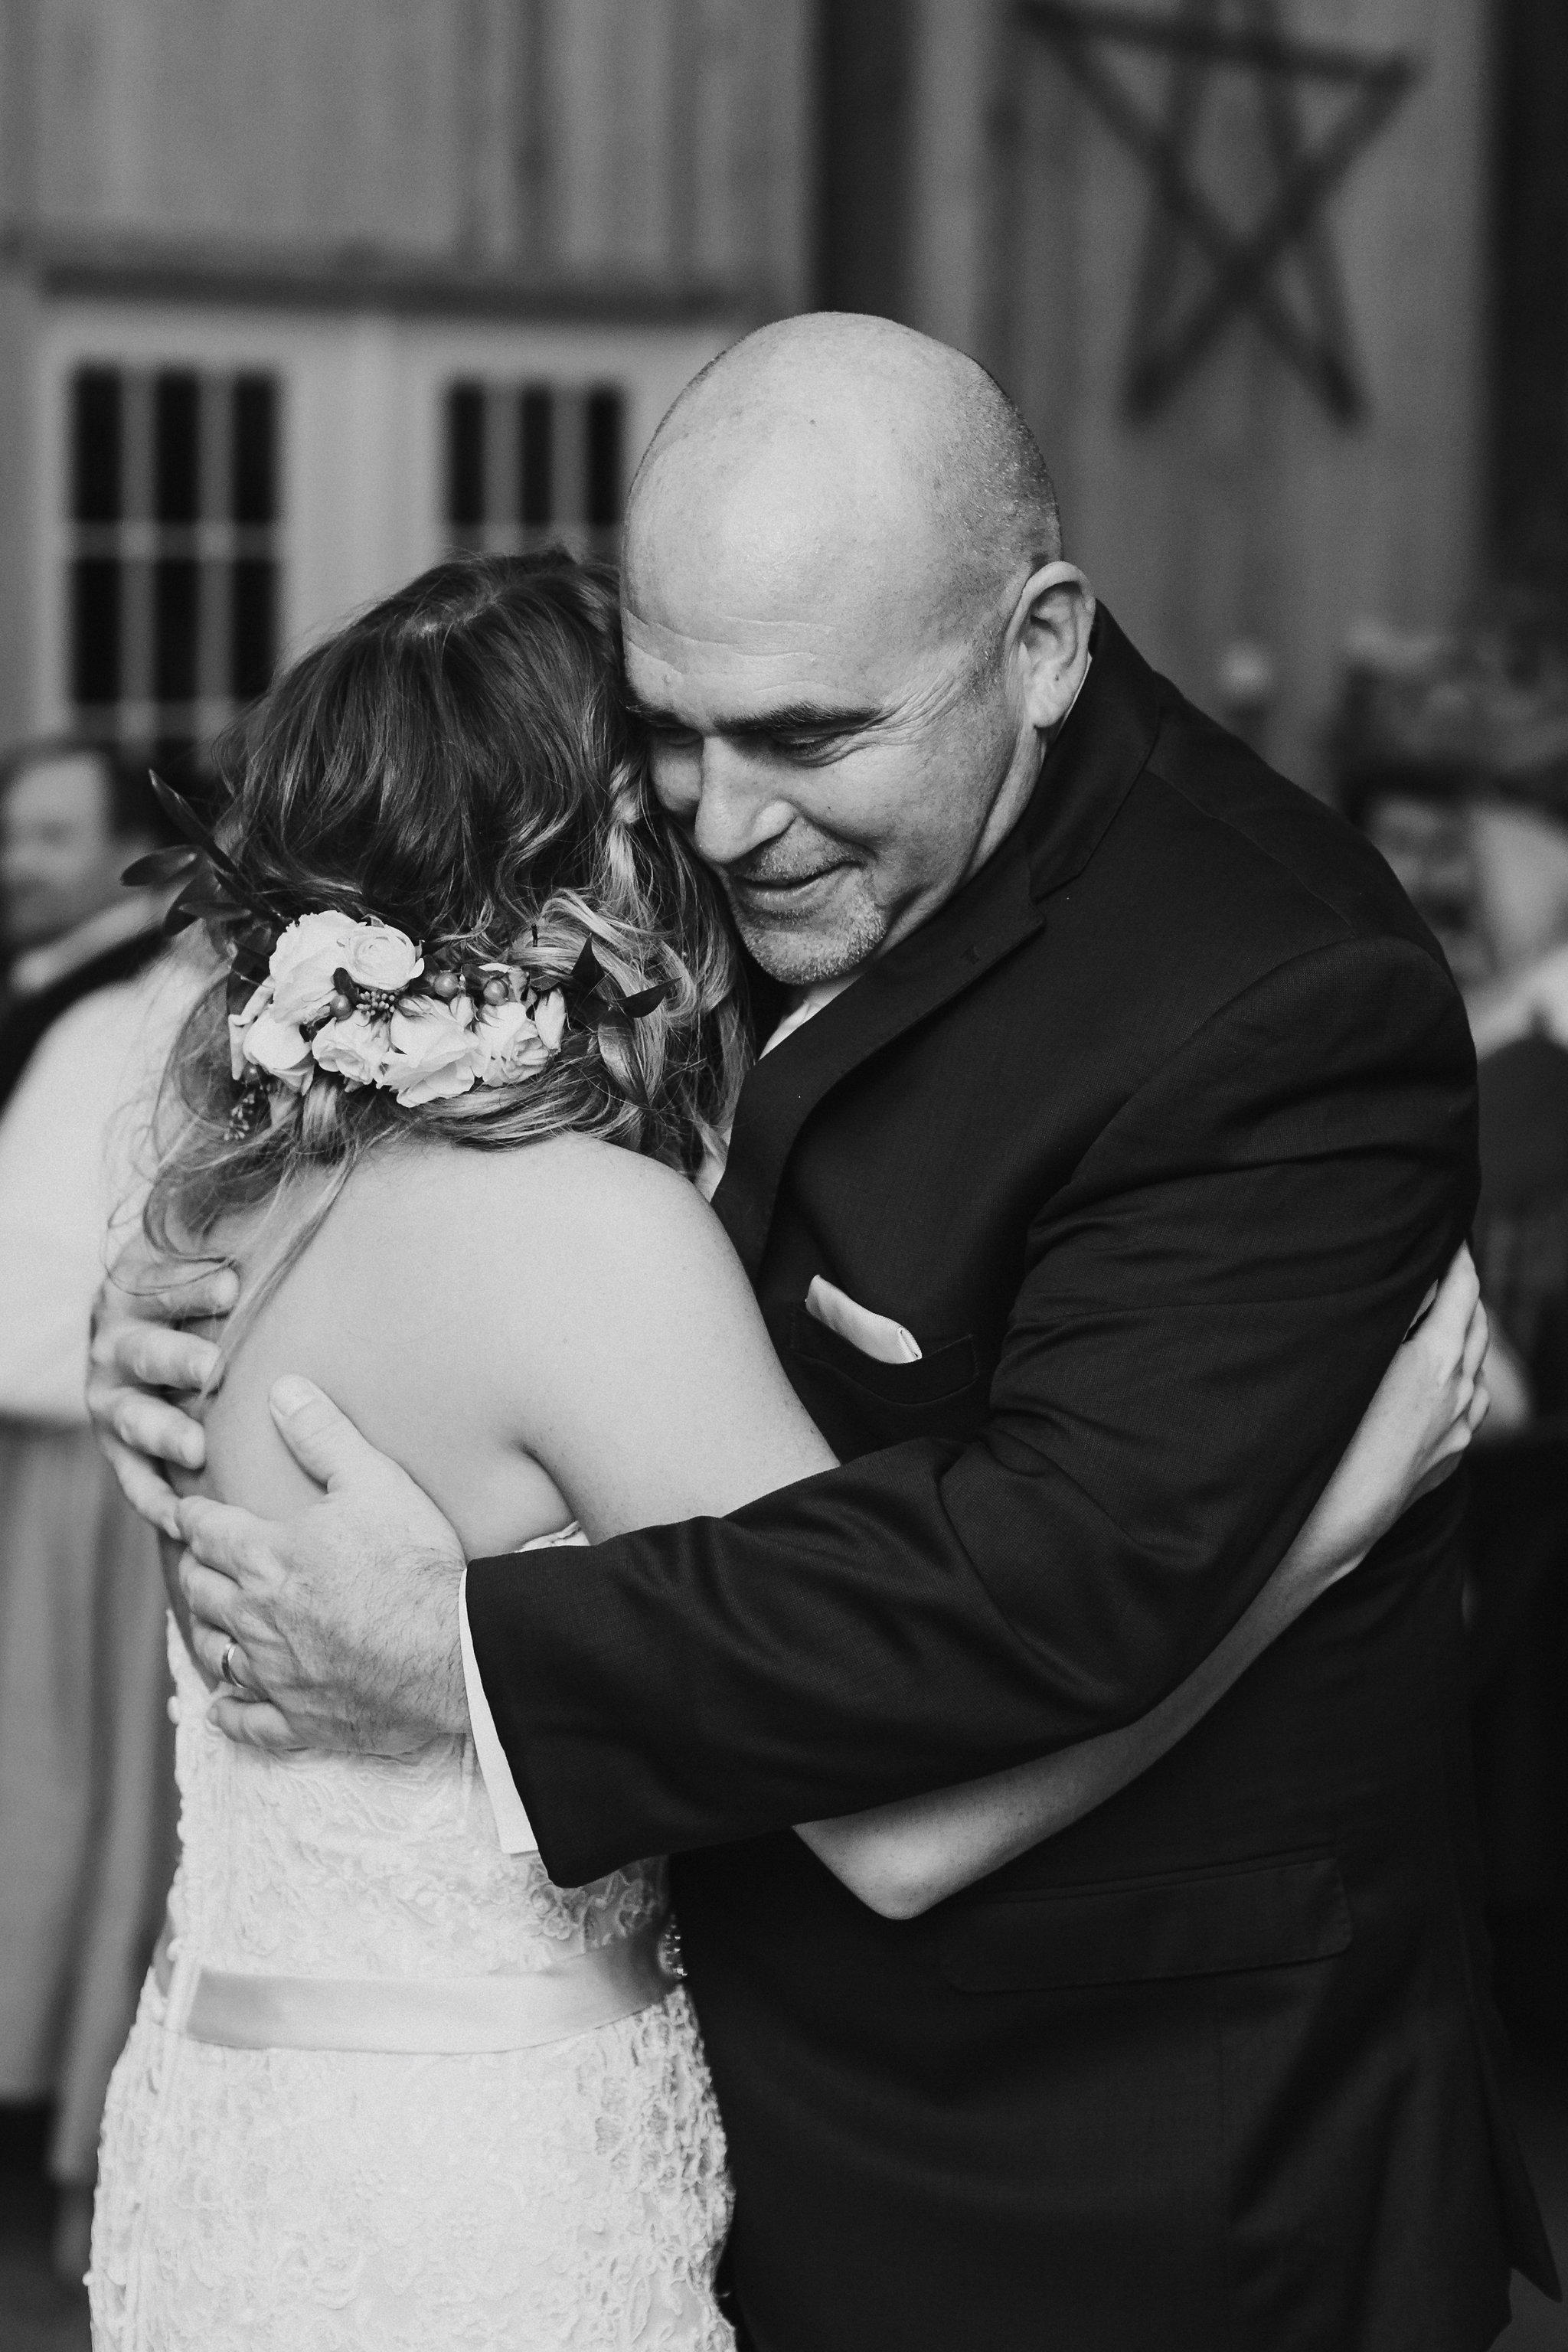 Ashley&NathanMarried2017-11-10at19.26.49PM188.jpg